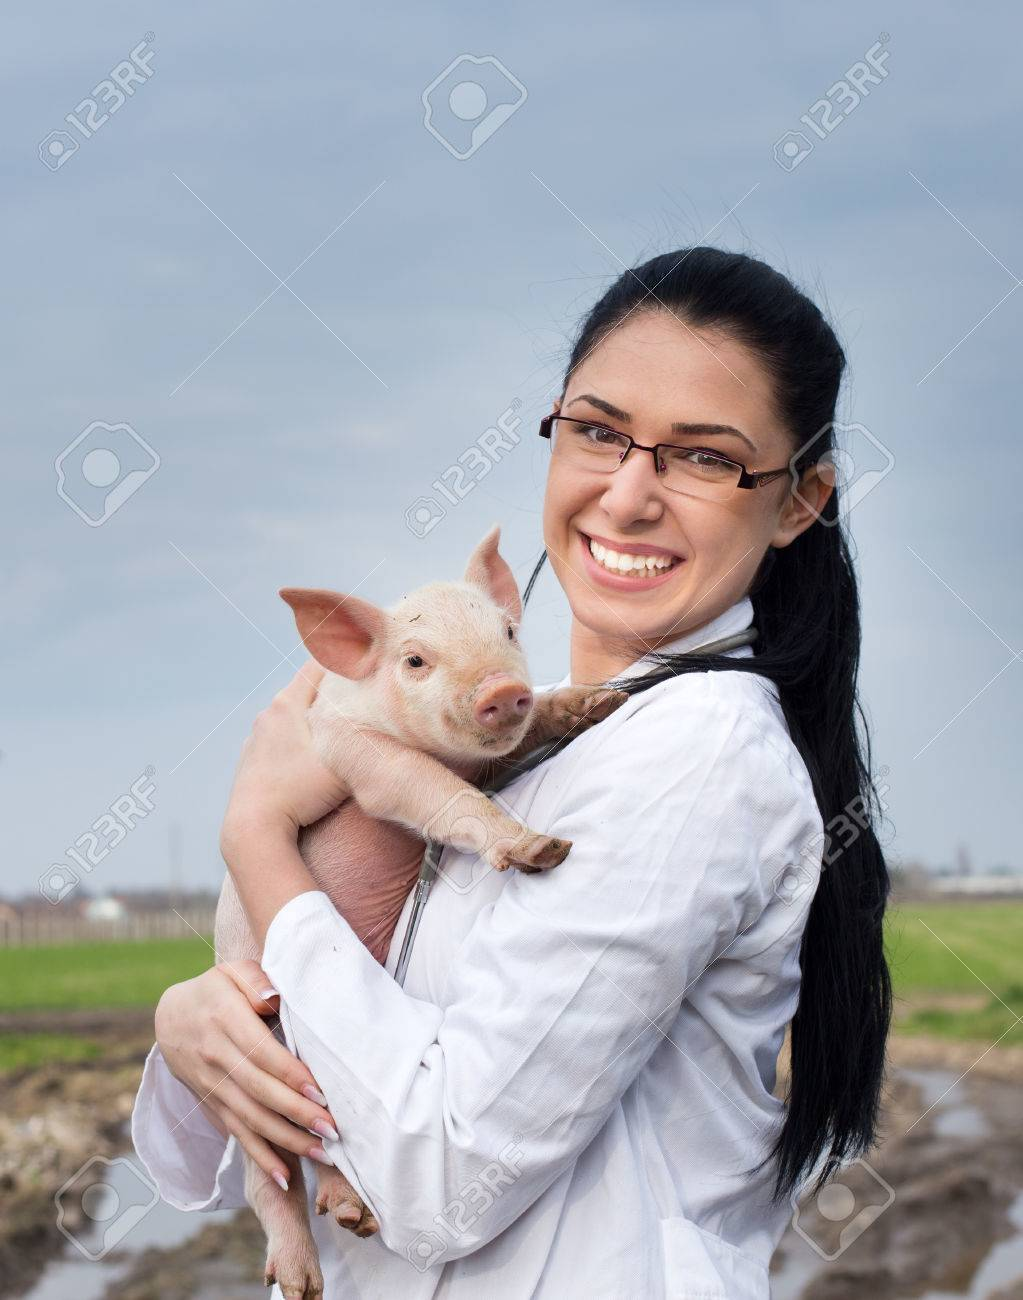 Happy young veterinarian girl holding cute piglet in her arms on the farm - 53744914